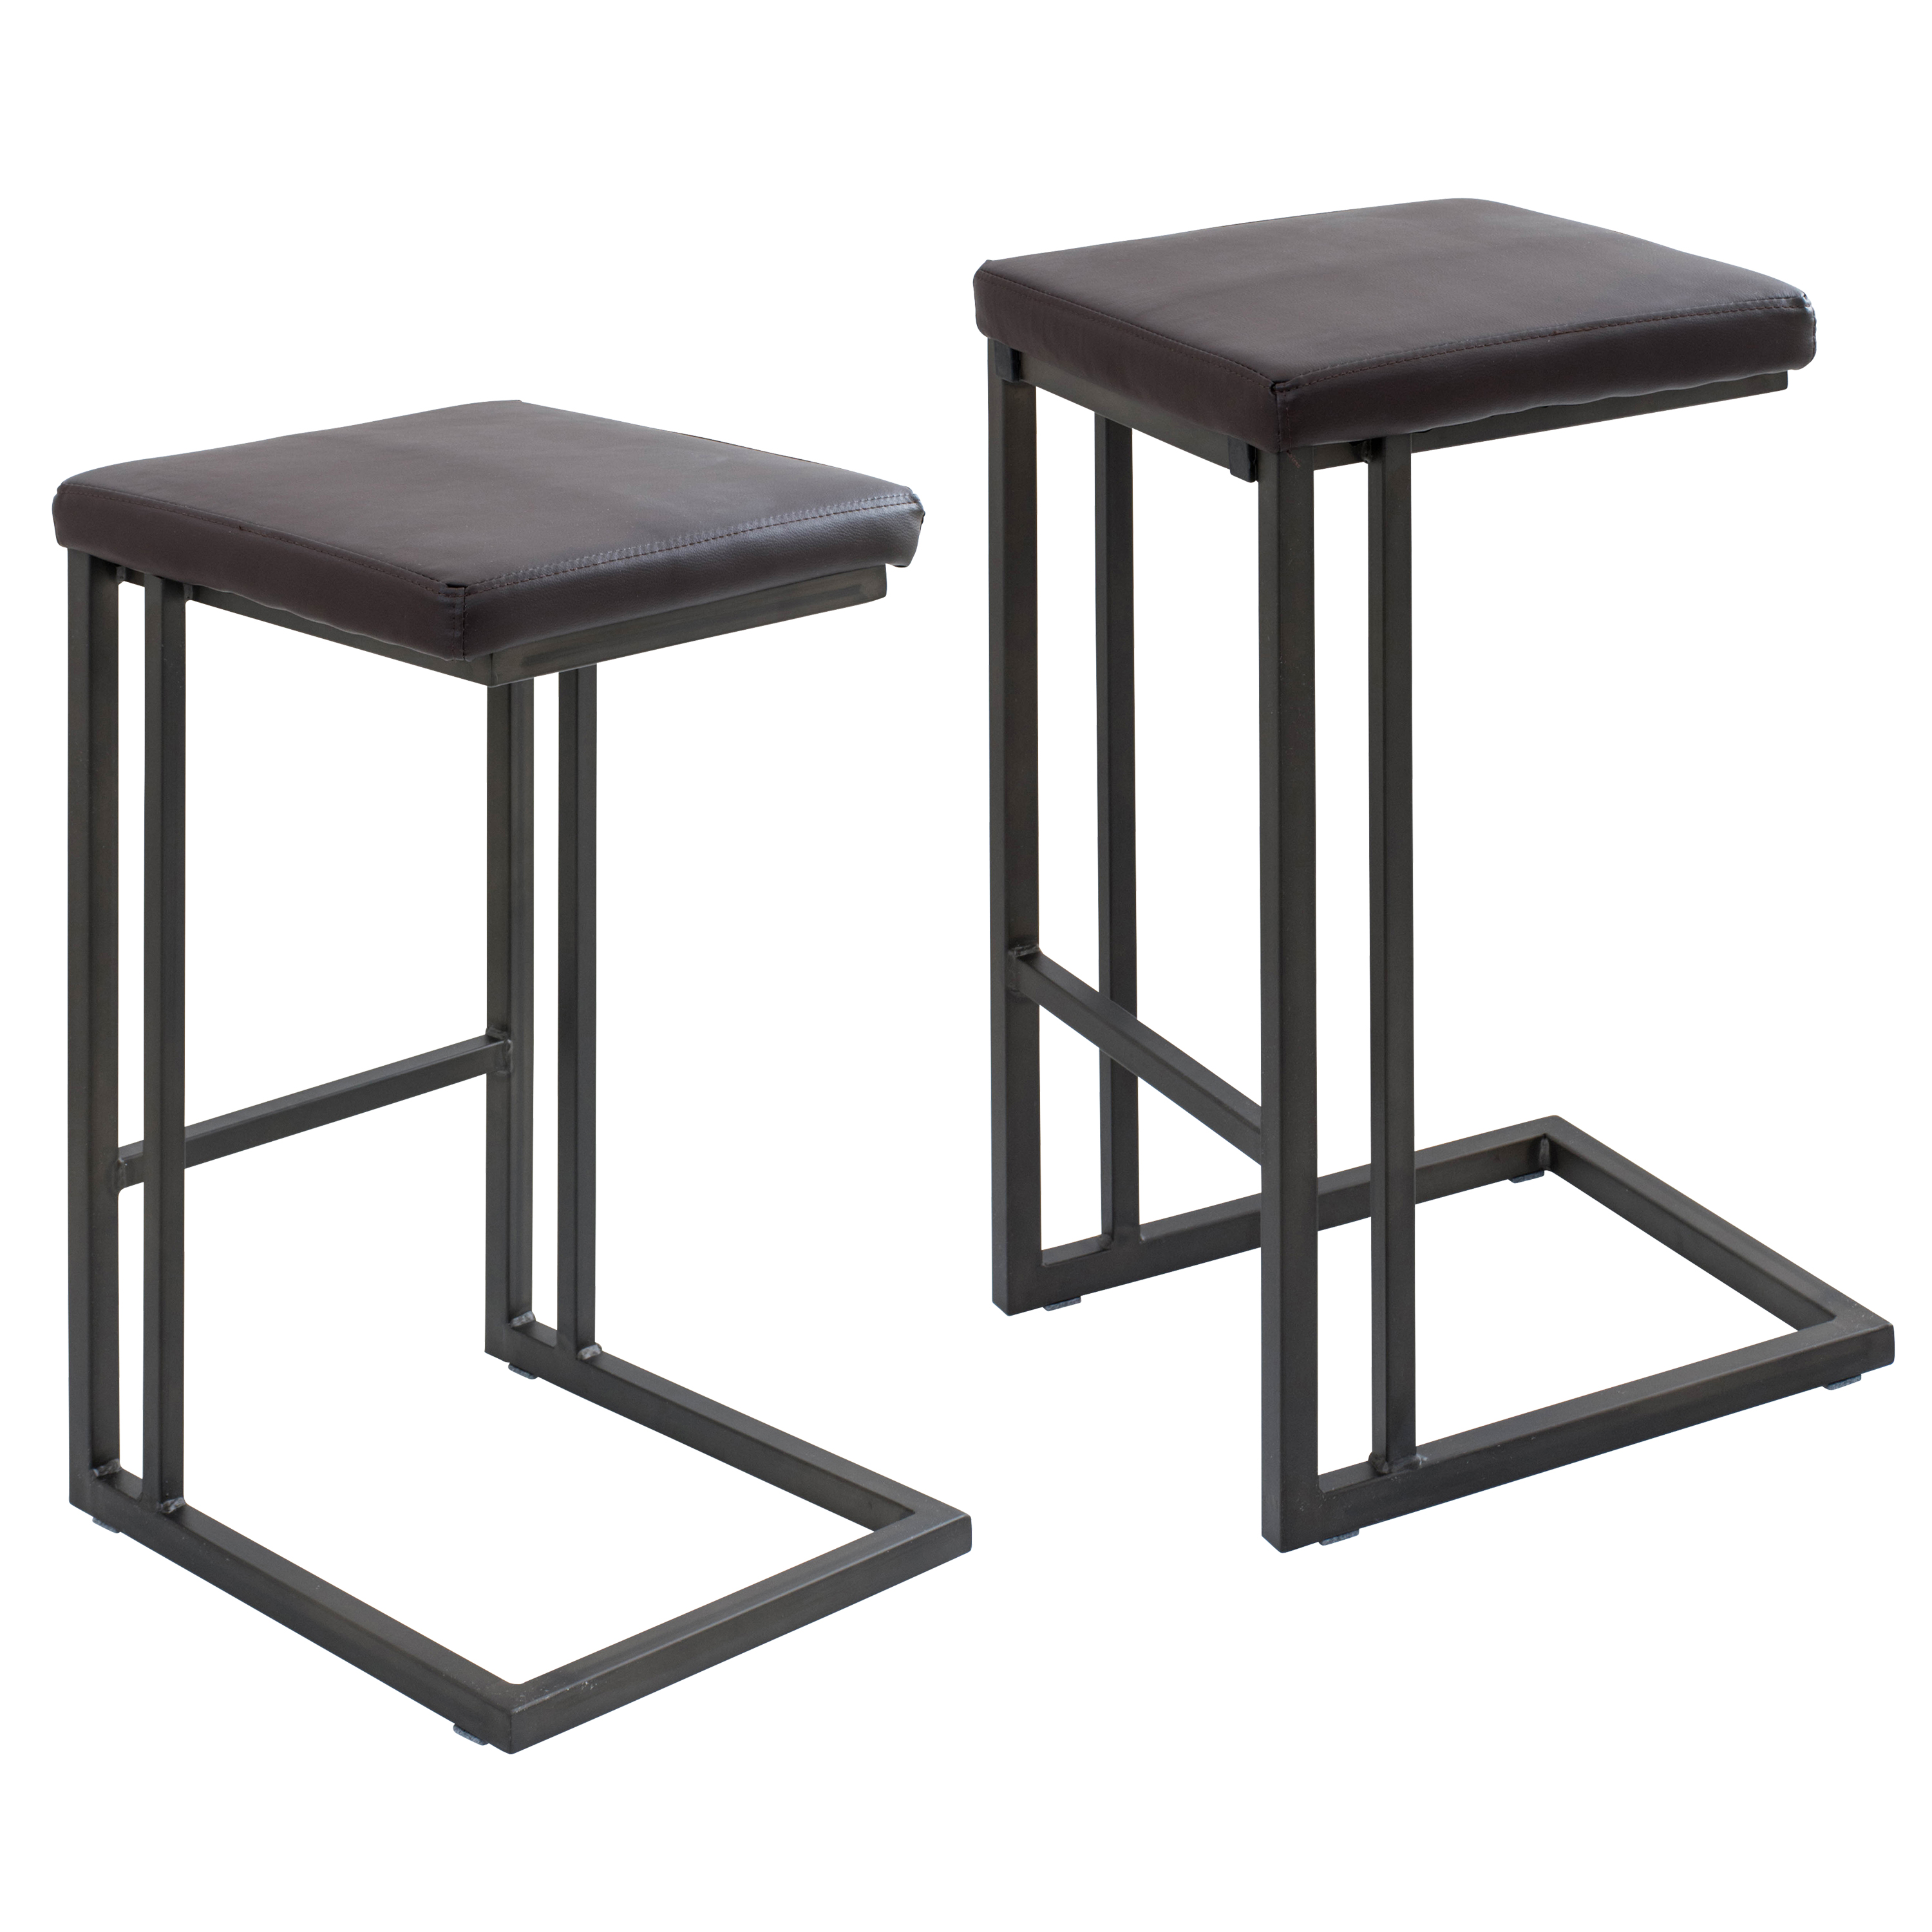 industrial chairs target plastic garden lumisource pair of roman counter stools in